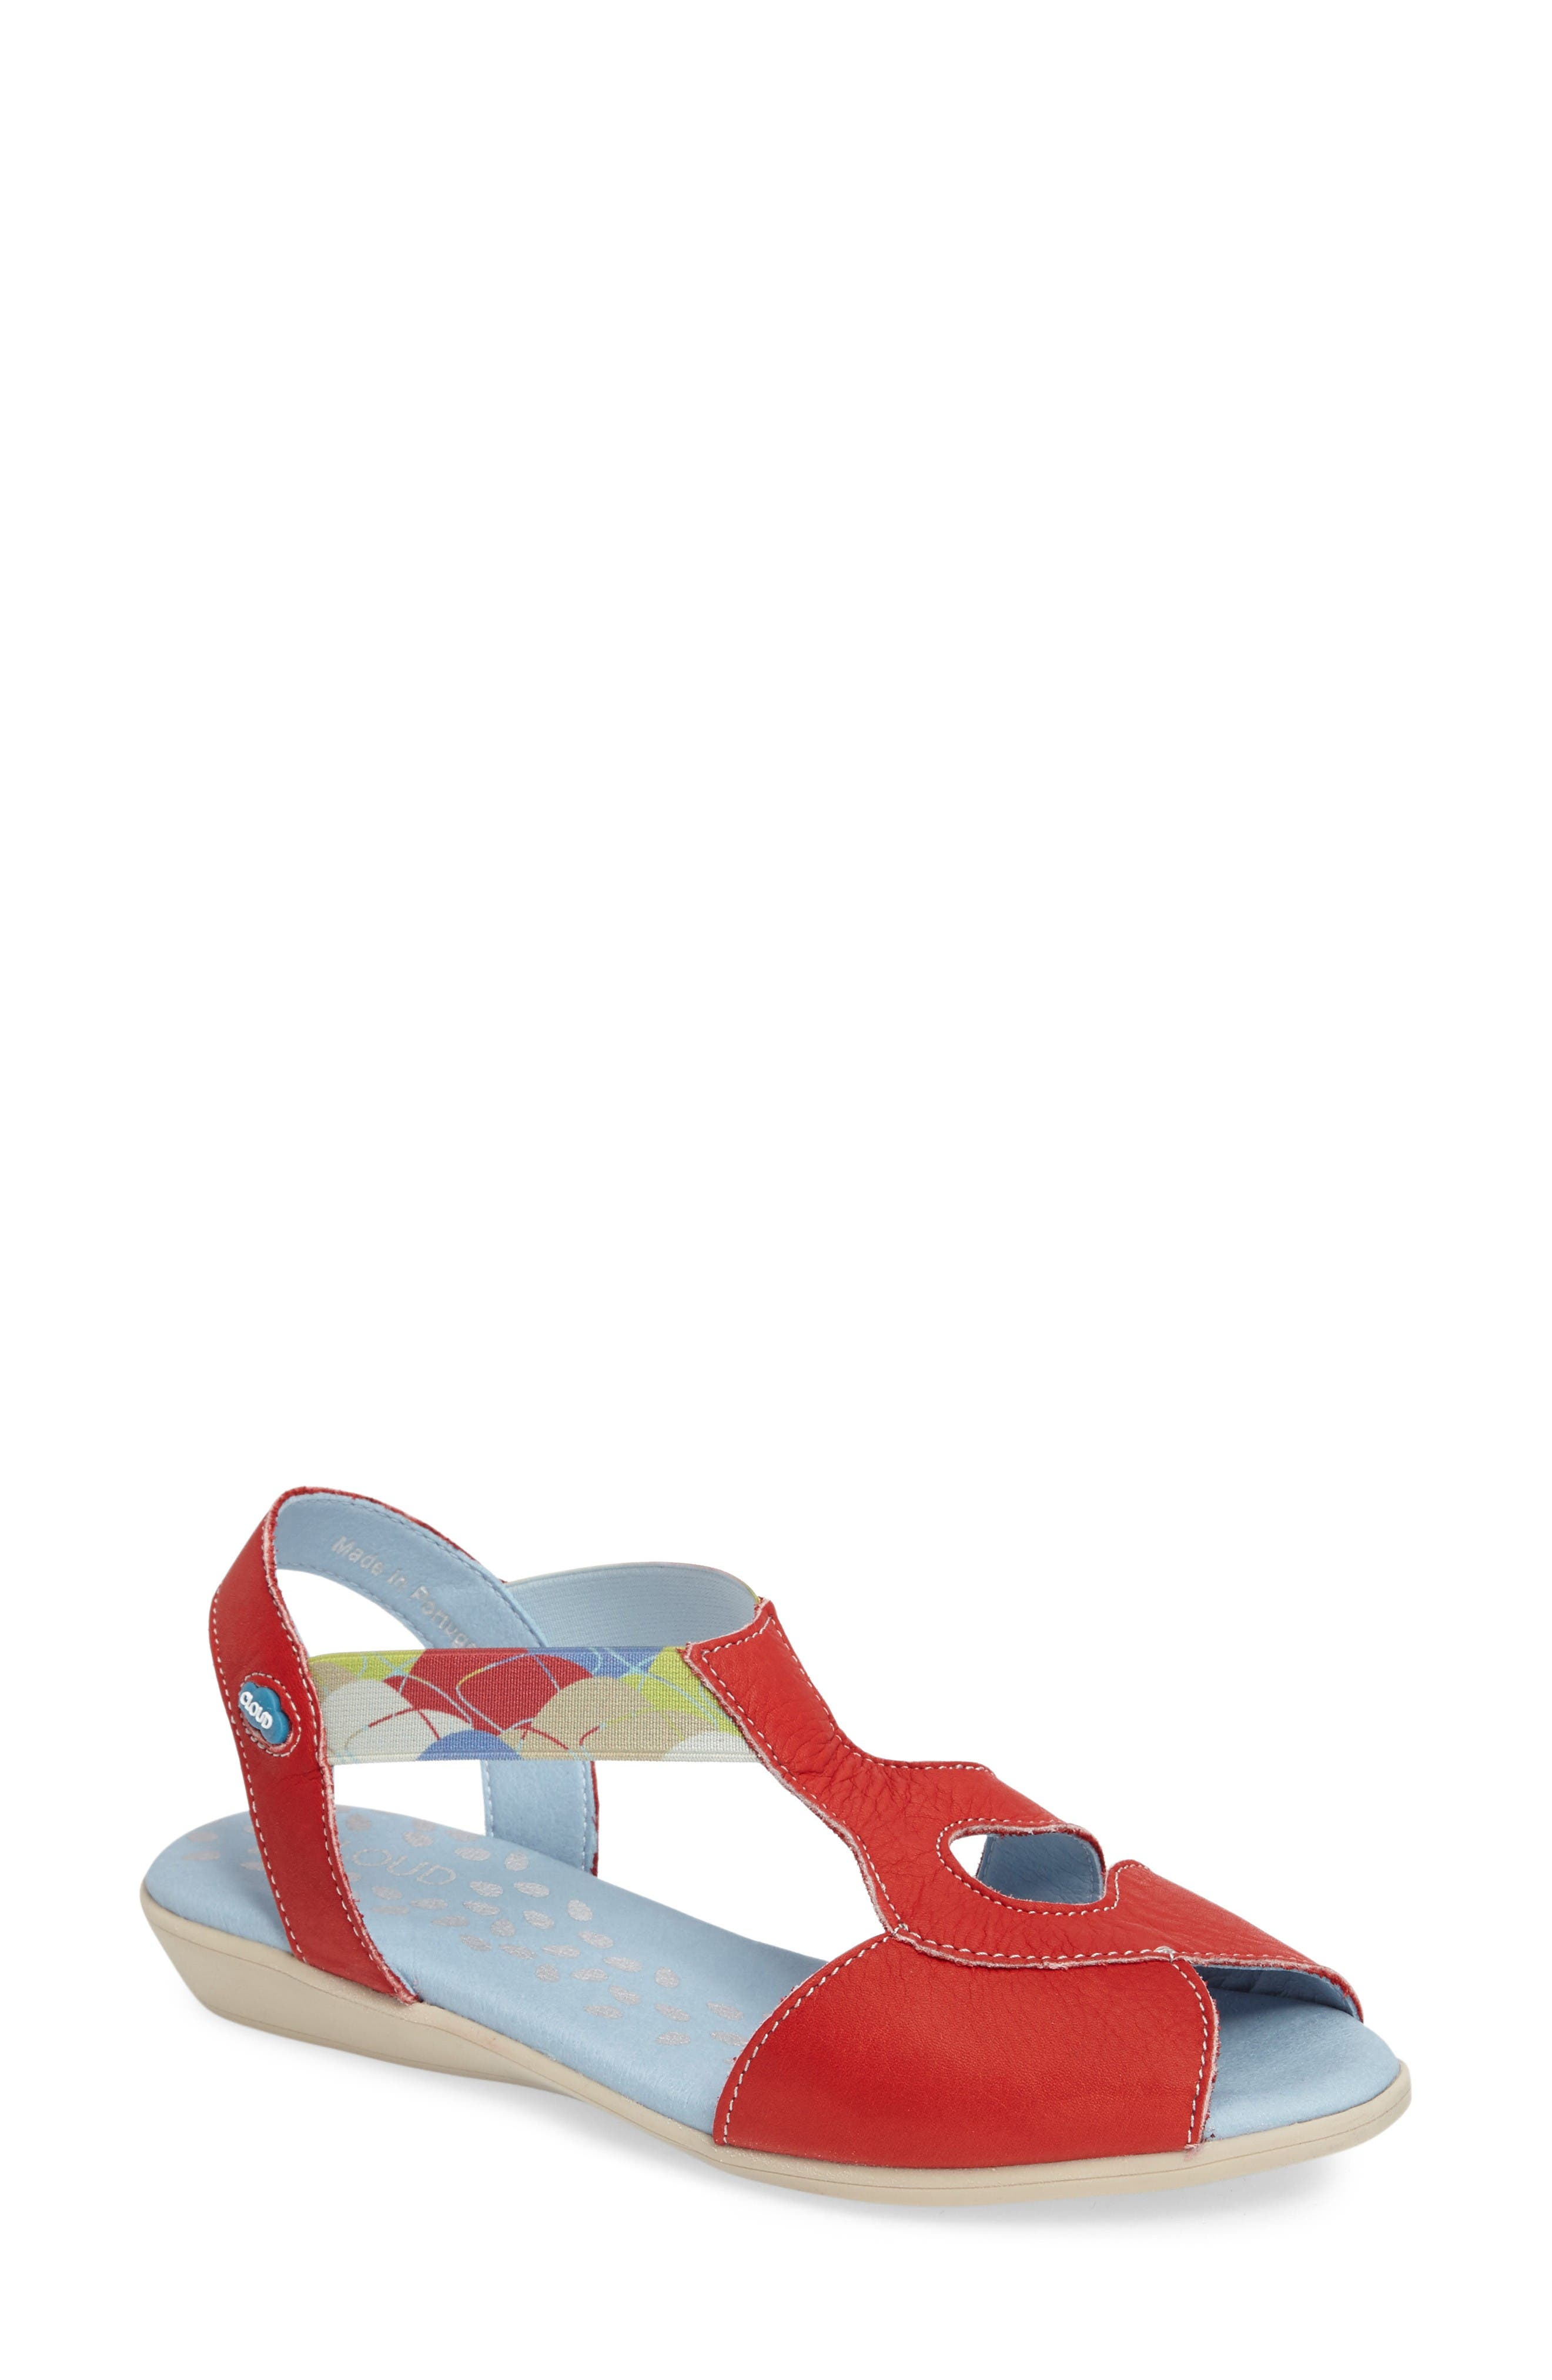 Chaya Sandal,                         Main,                         color, Red Leather